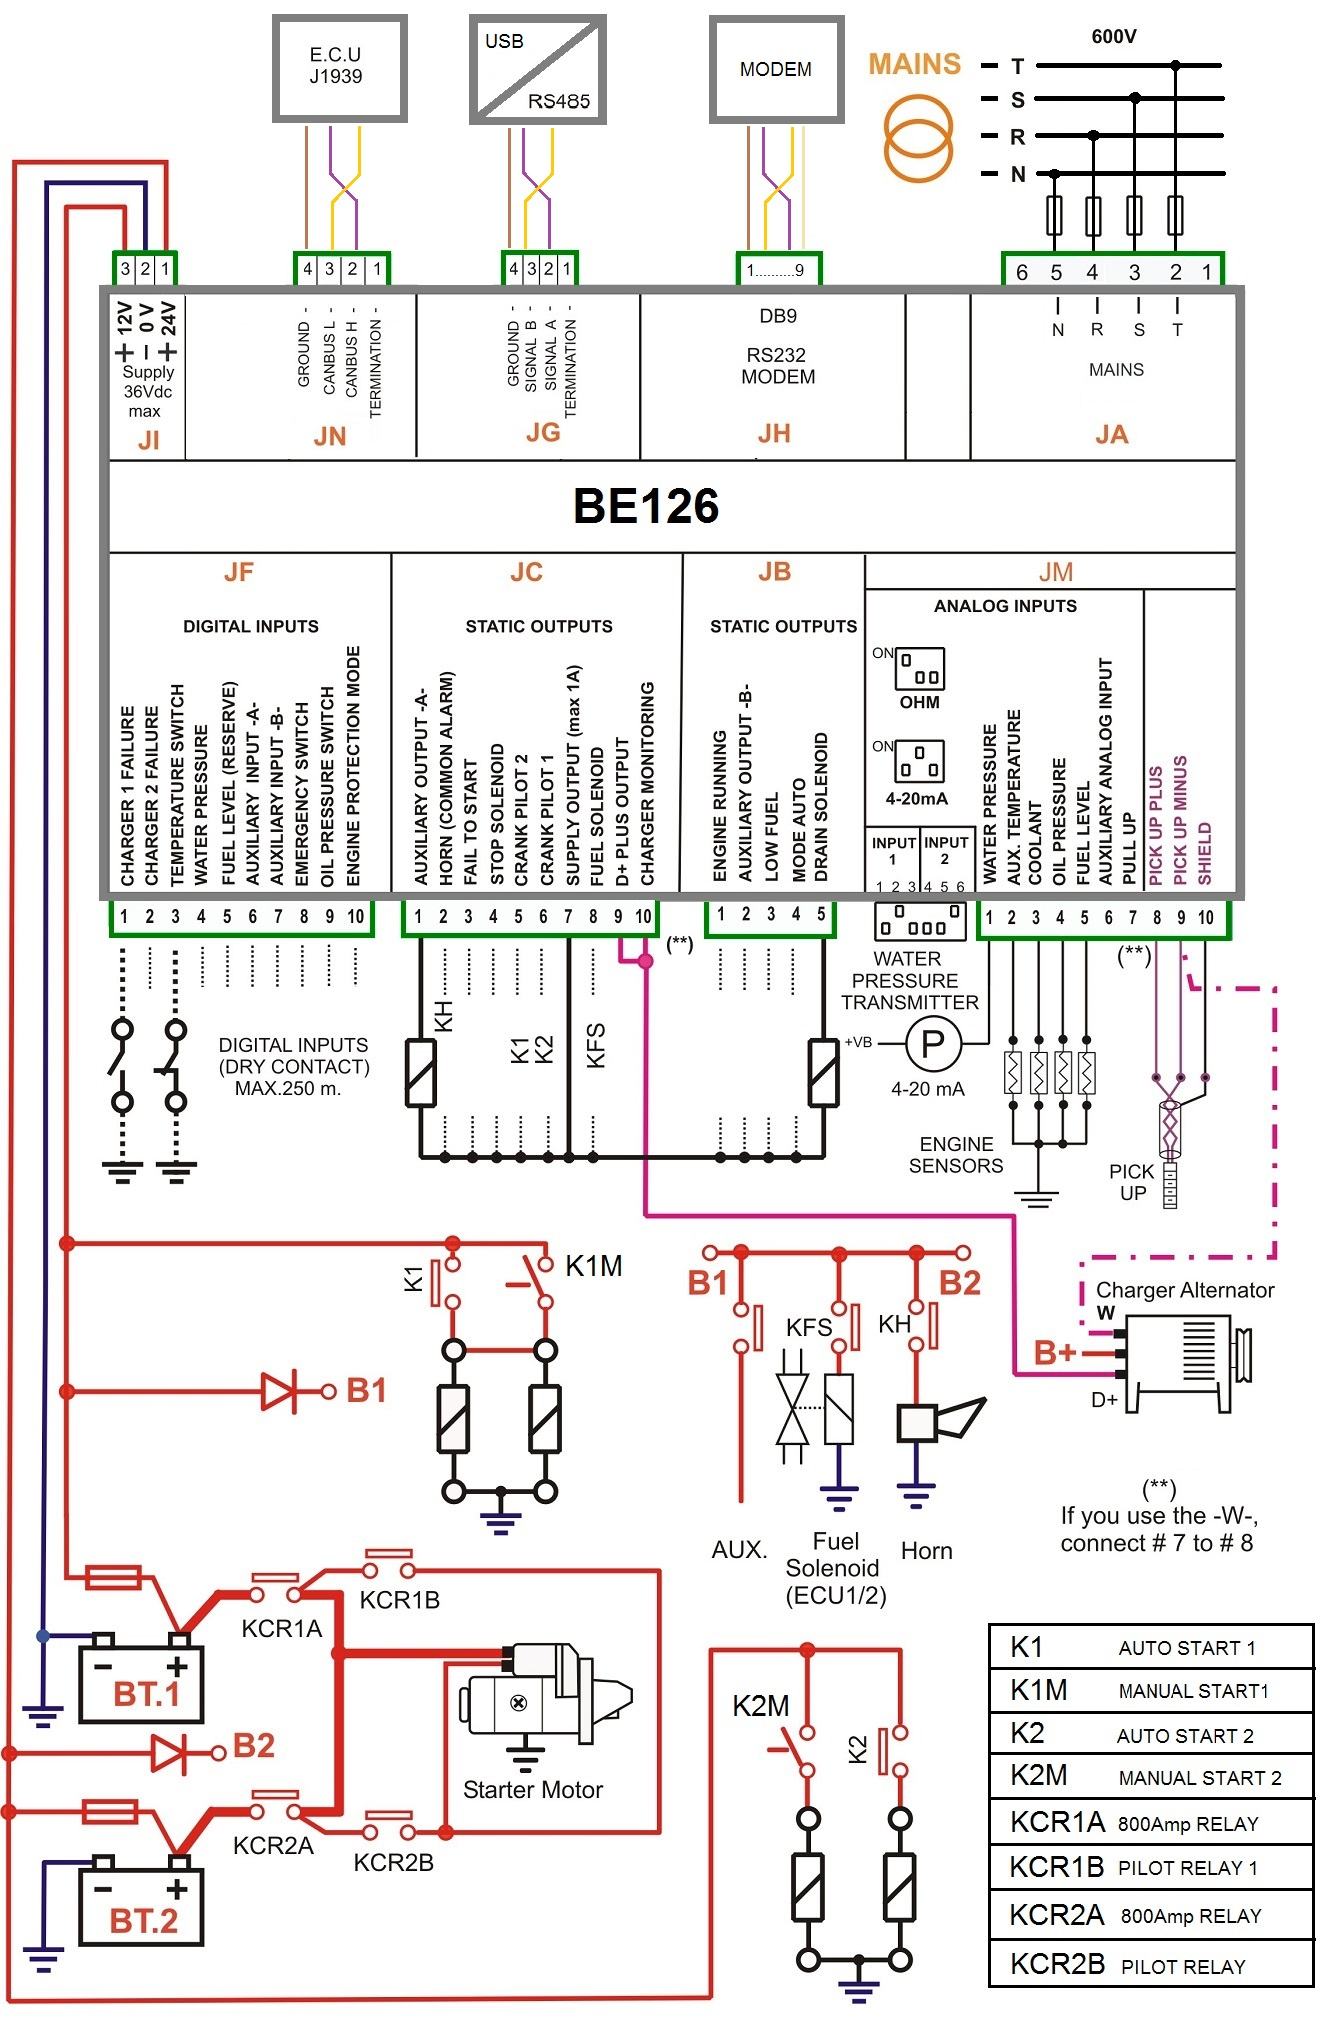 Fire Pump Controller Wiring Diagram Genset Electrical Diagrams For Dummies